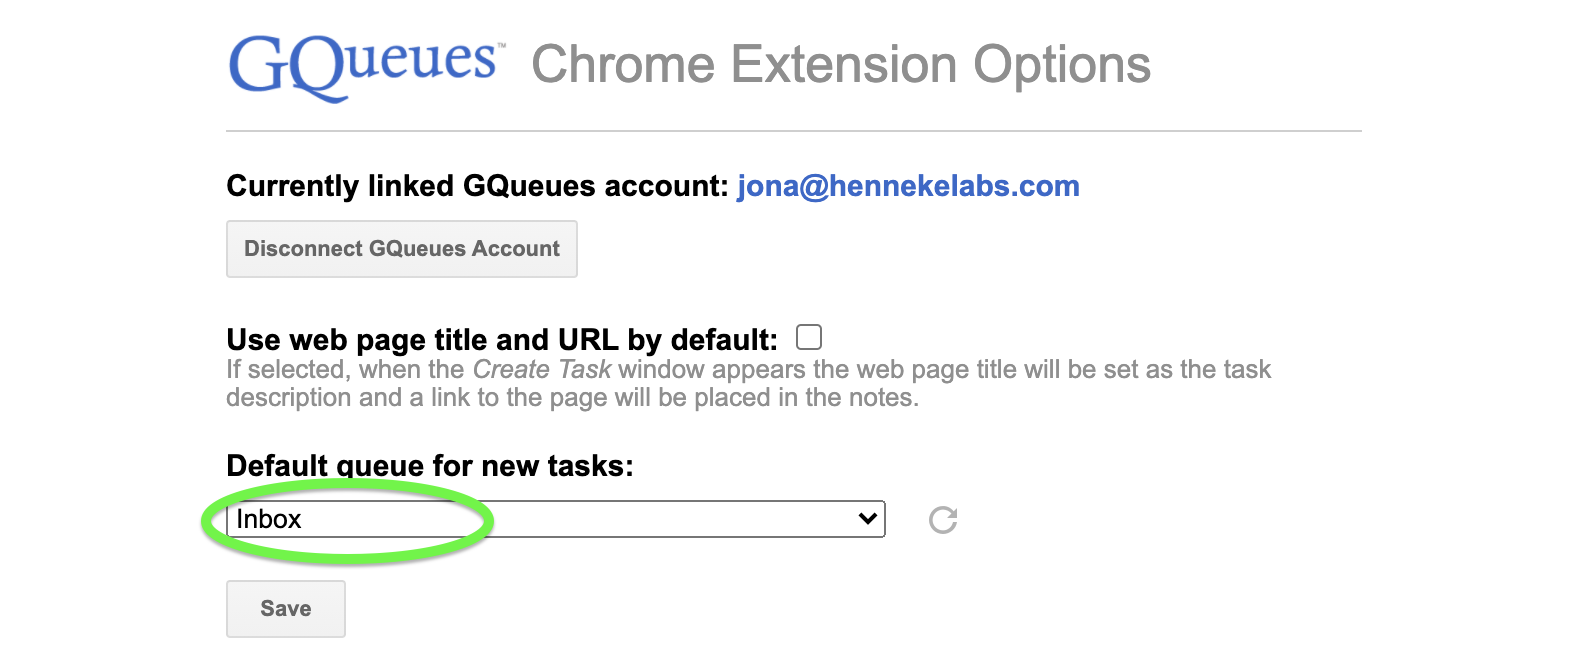 Change the default queue for tasks created from the Chrome Extension.